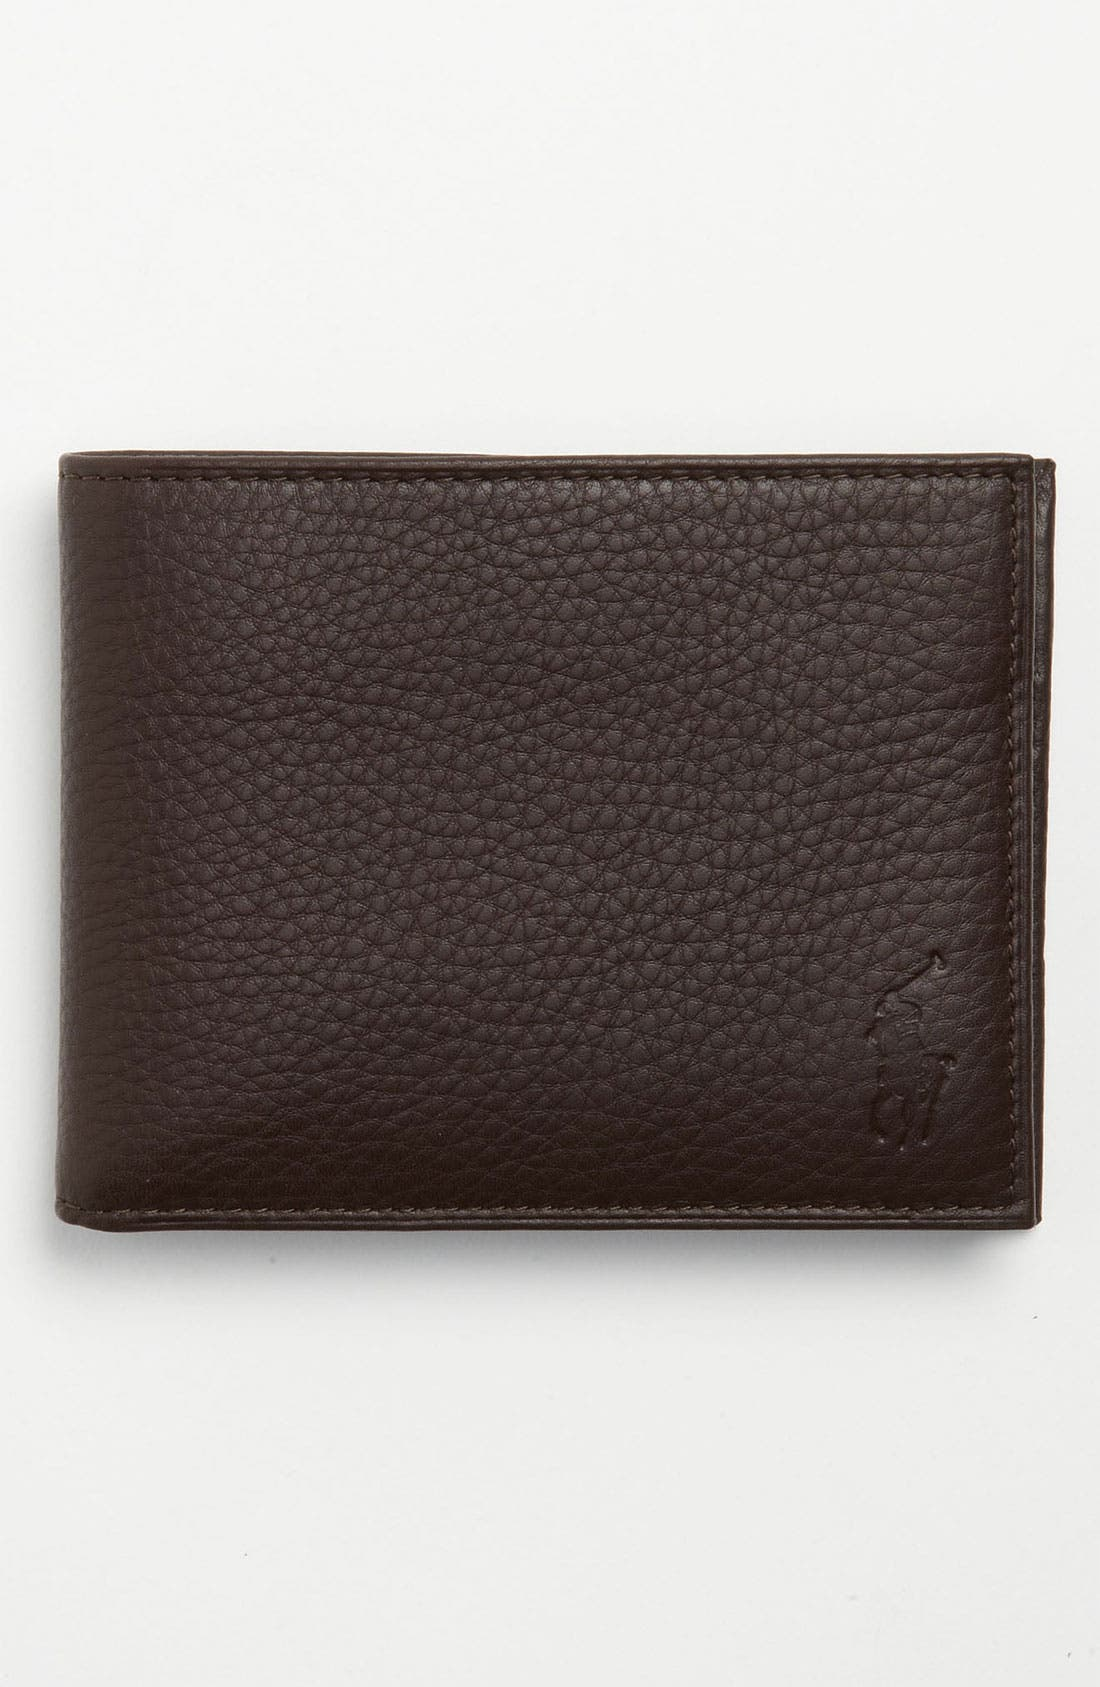 Main Image - Polo Ralph Lauren Leather Passcase Wallet